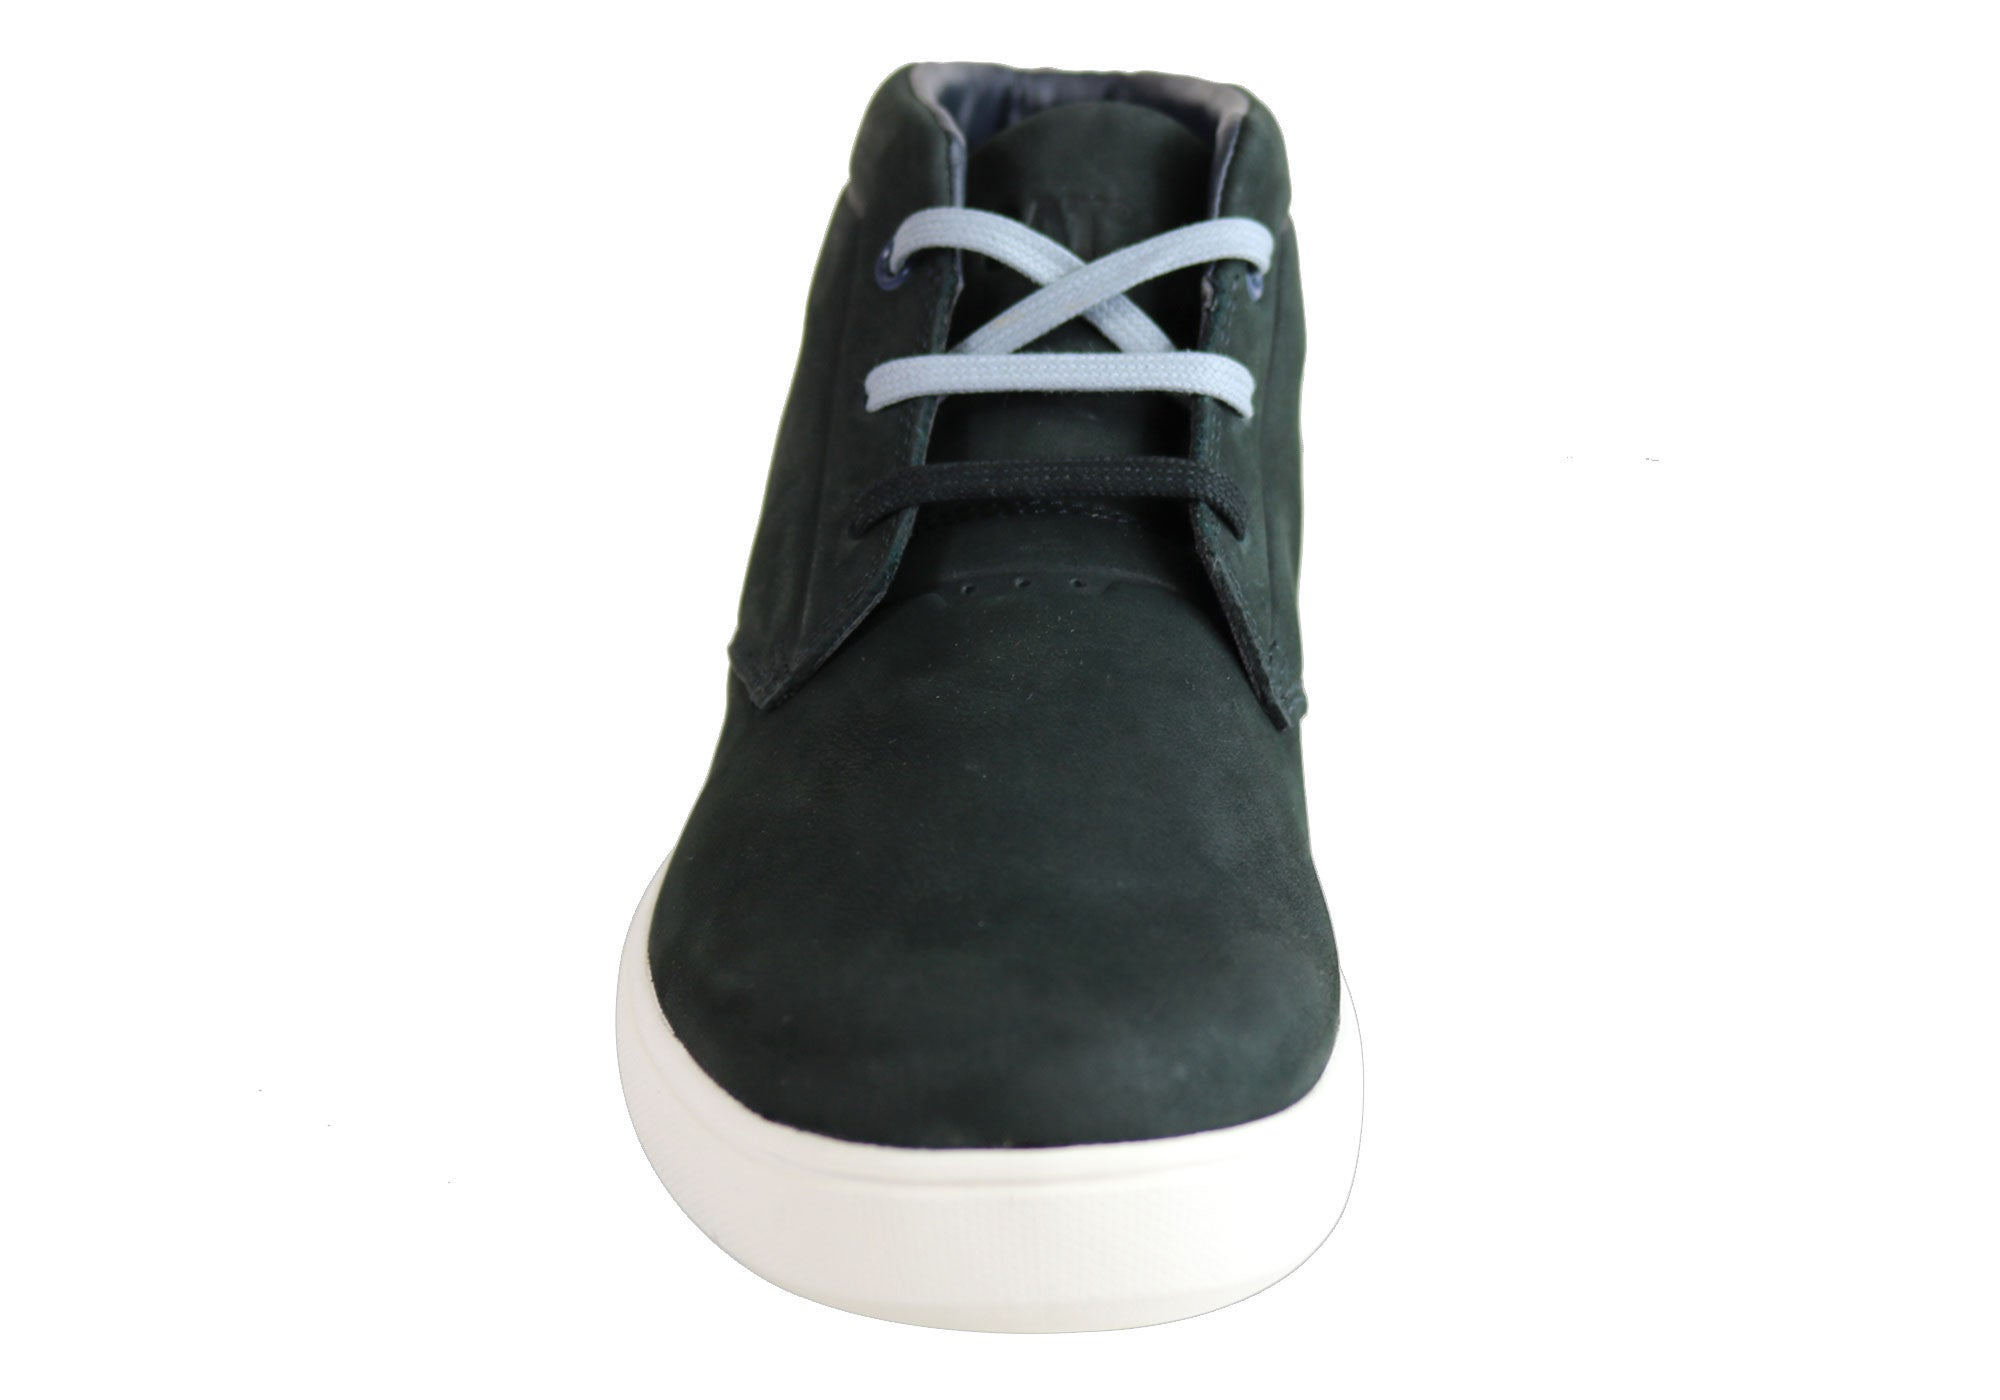 Brand-New-Caterpillar-Theorem-Mens-Lace-Up-Leather-Comfortable-Casual-Boots thumbnail 5